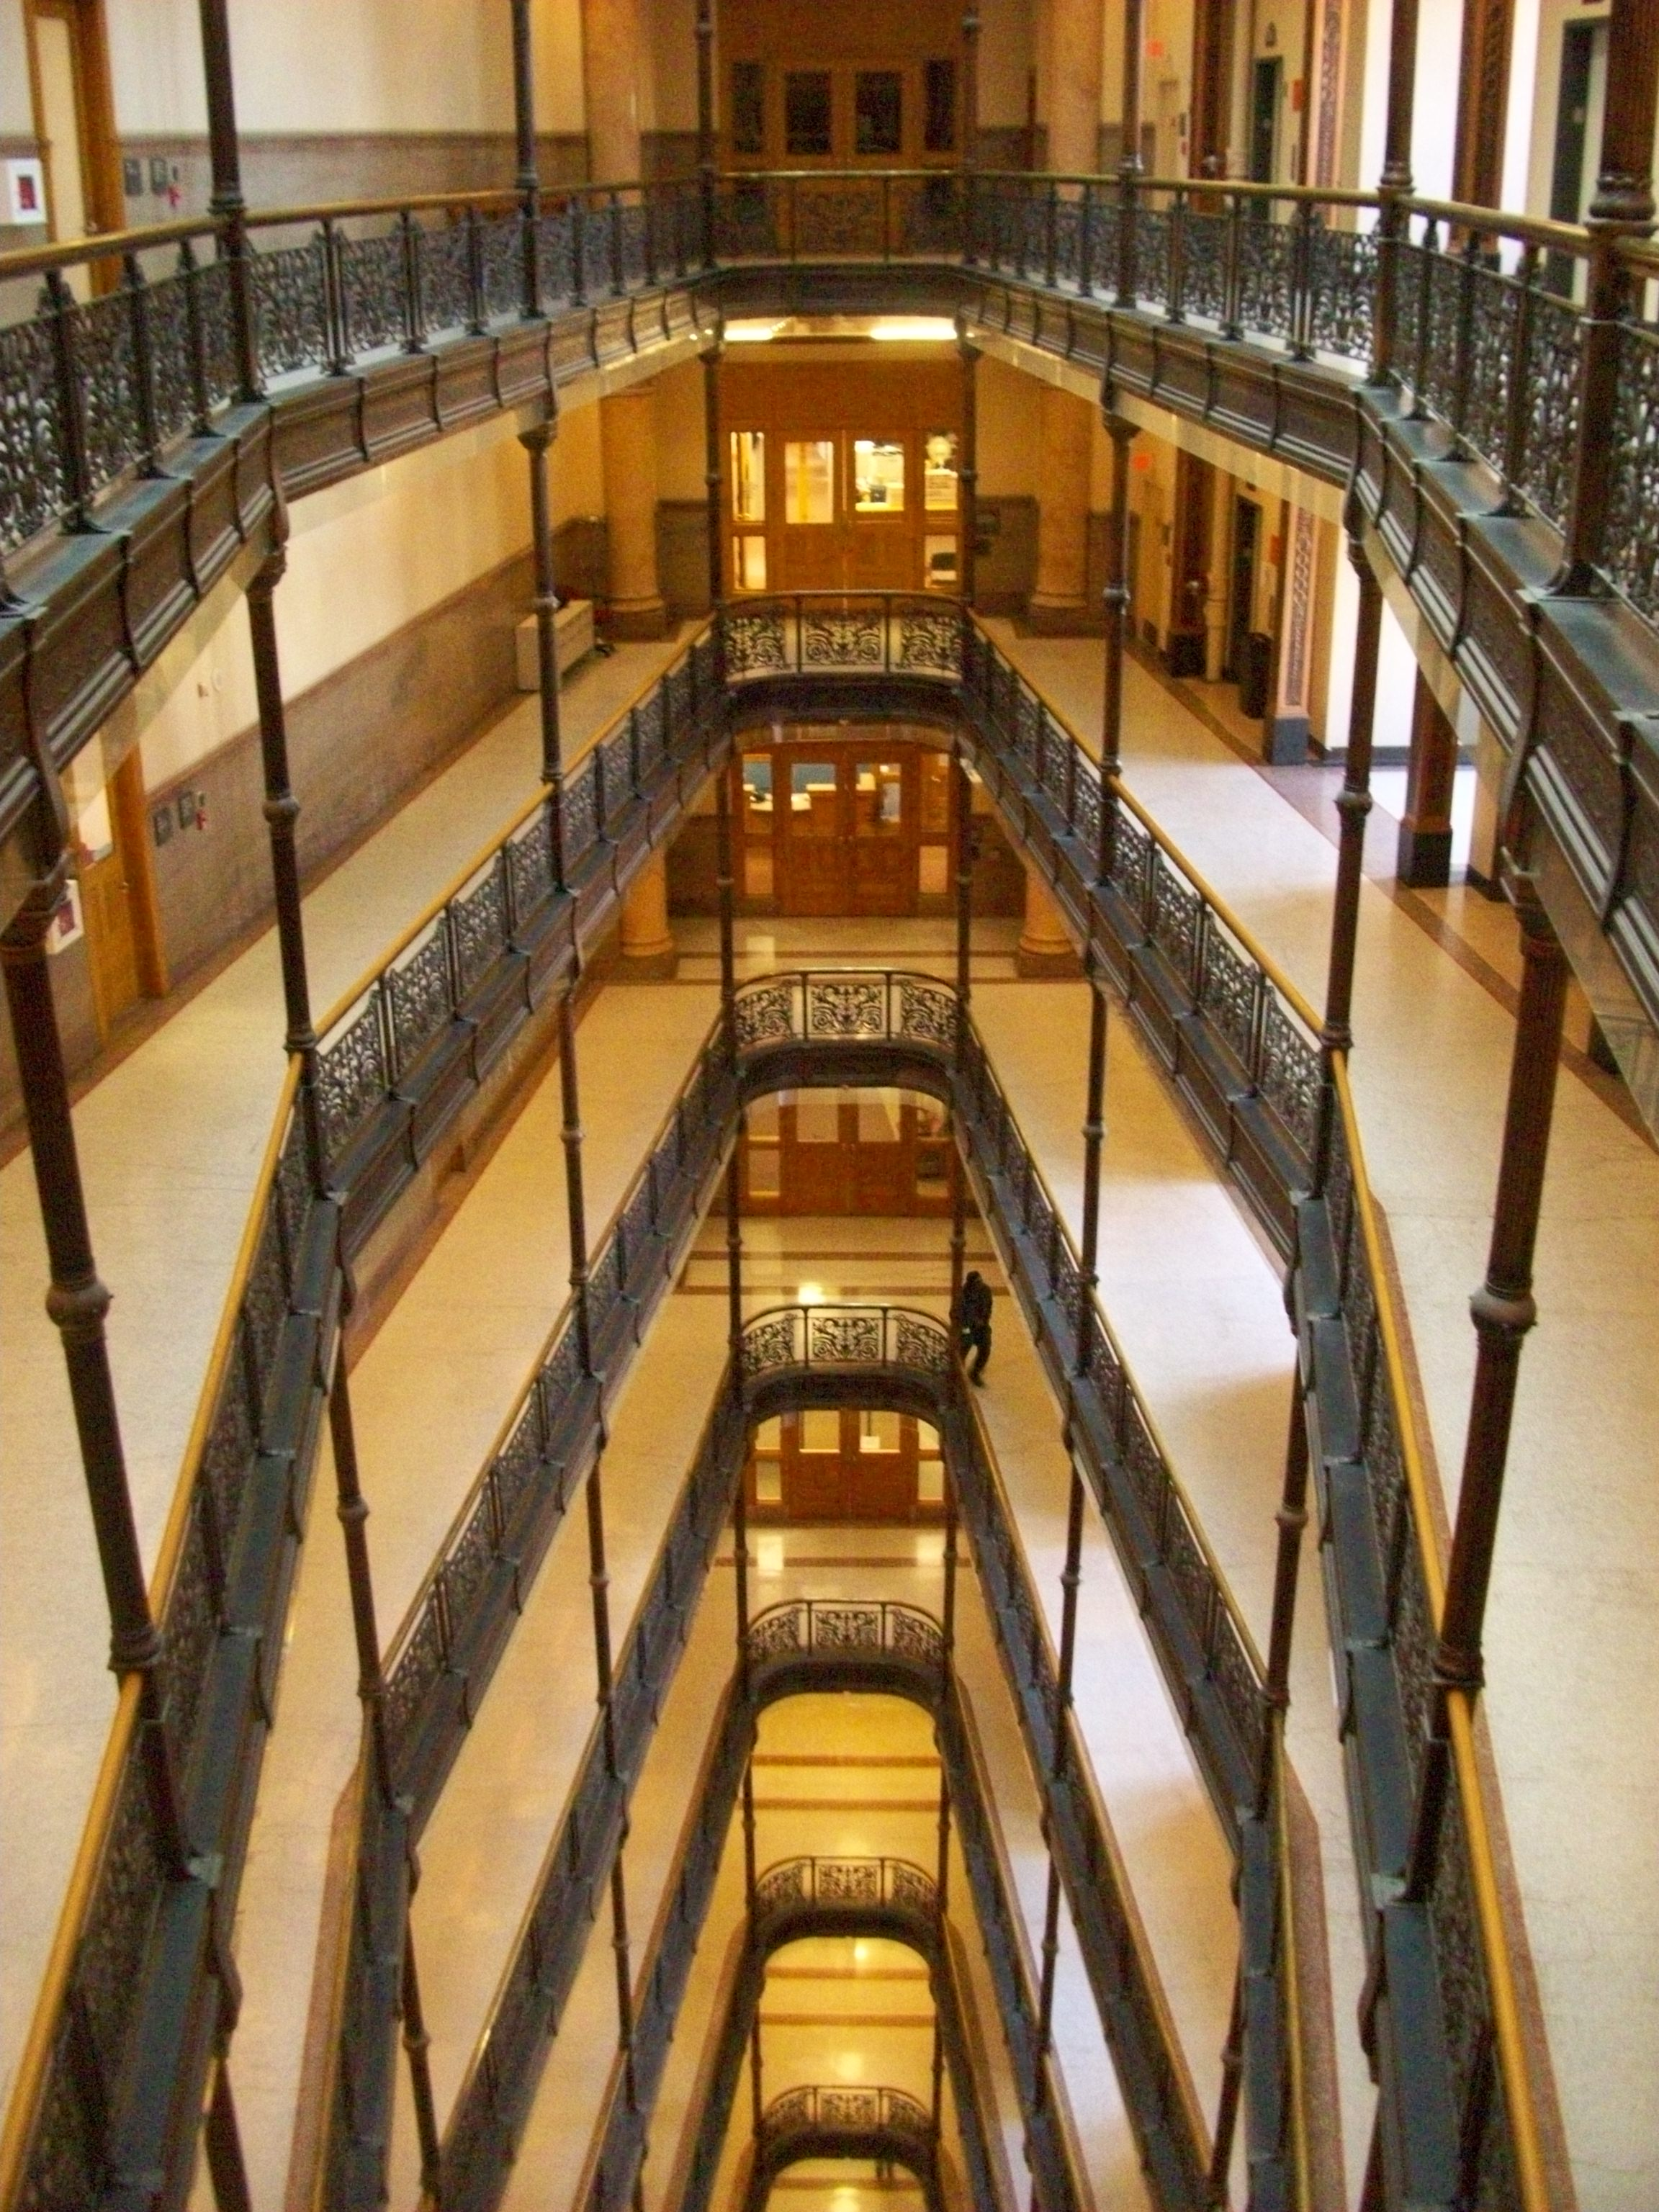 Milwaukee City Hall Atrium Looking Down from the 8th Floor